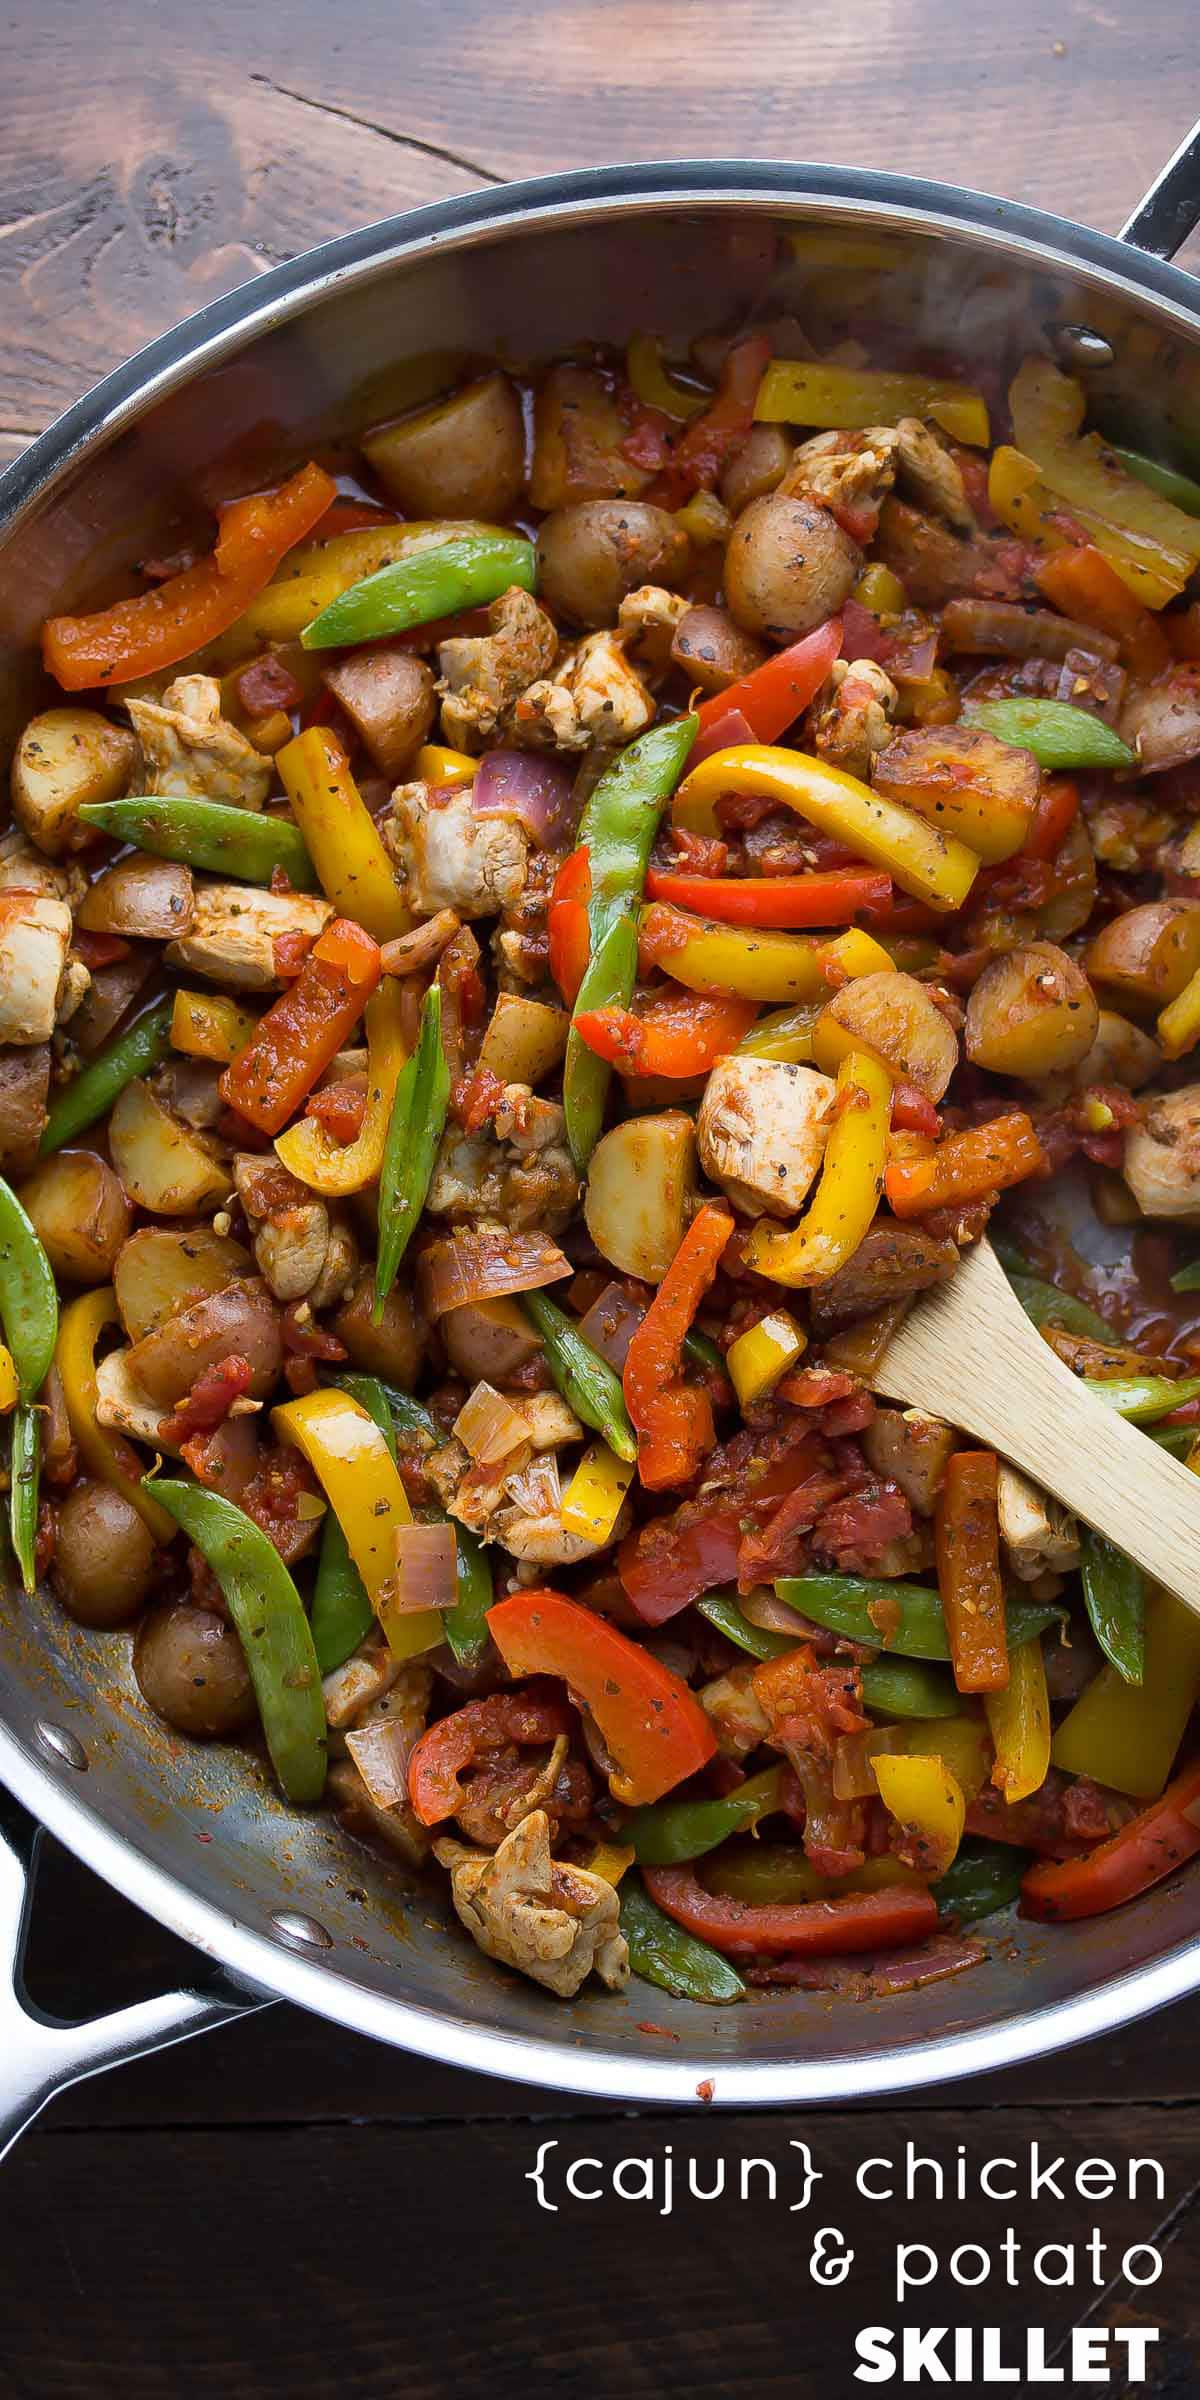 Healthy Skillet Dinners  Healthy Chicken Skillet with Cajun Potatoes and Veggies